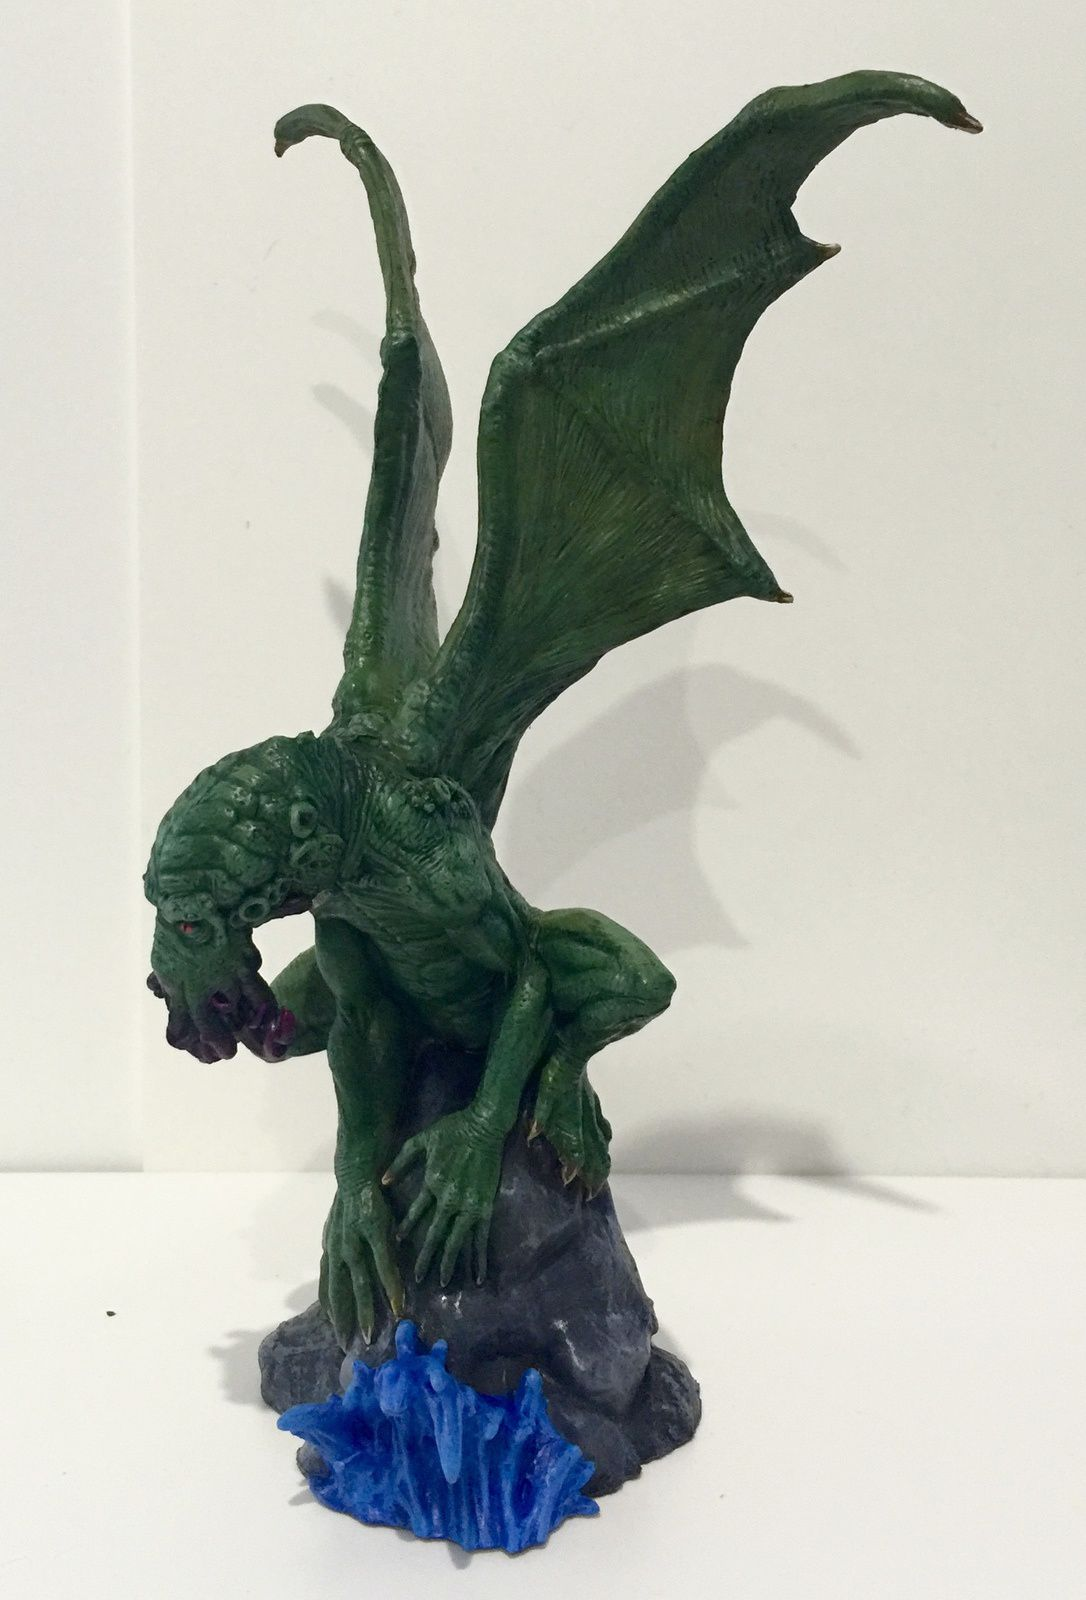 Cthulhu Wars in : Great Cthulhu painted !